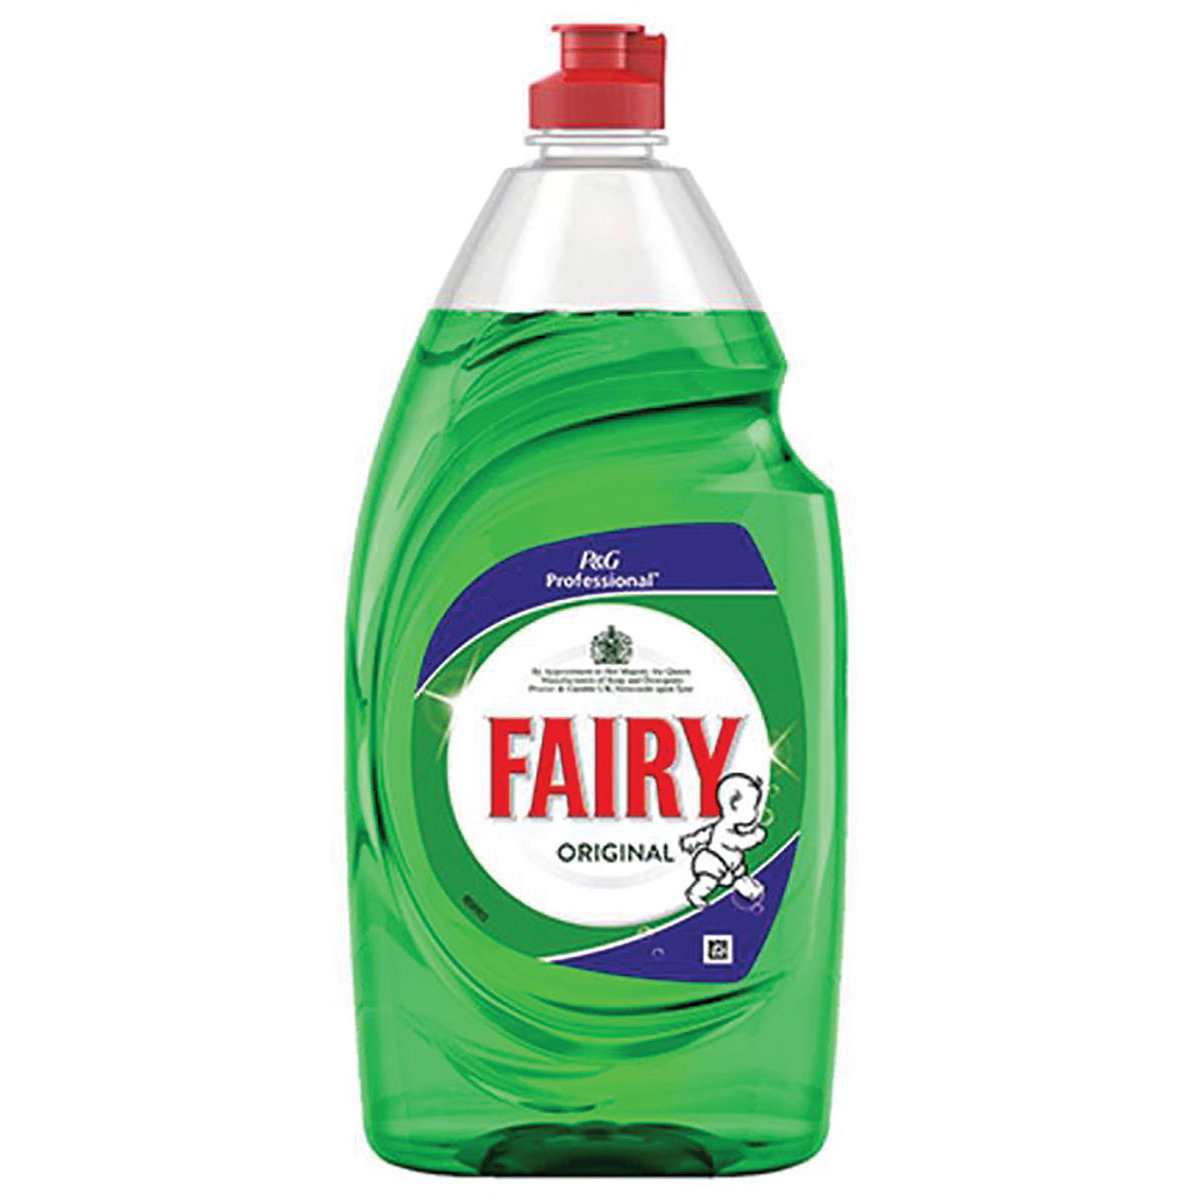 Dishwashing products Fairy Liquid for Washing-up Original 900ml Ref 73406